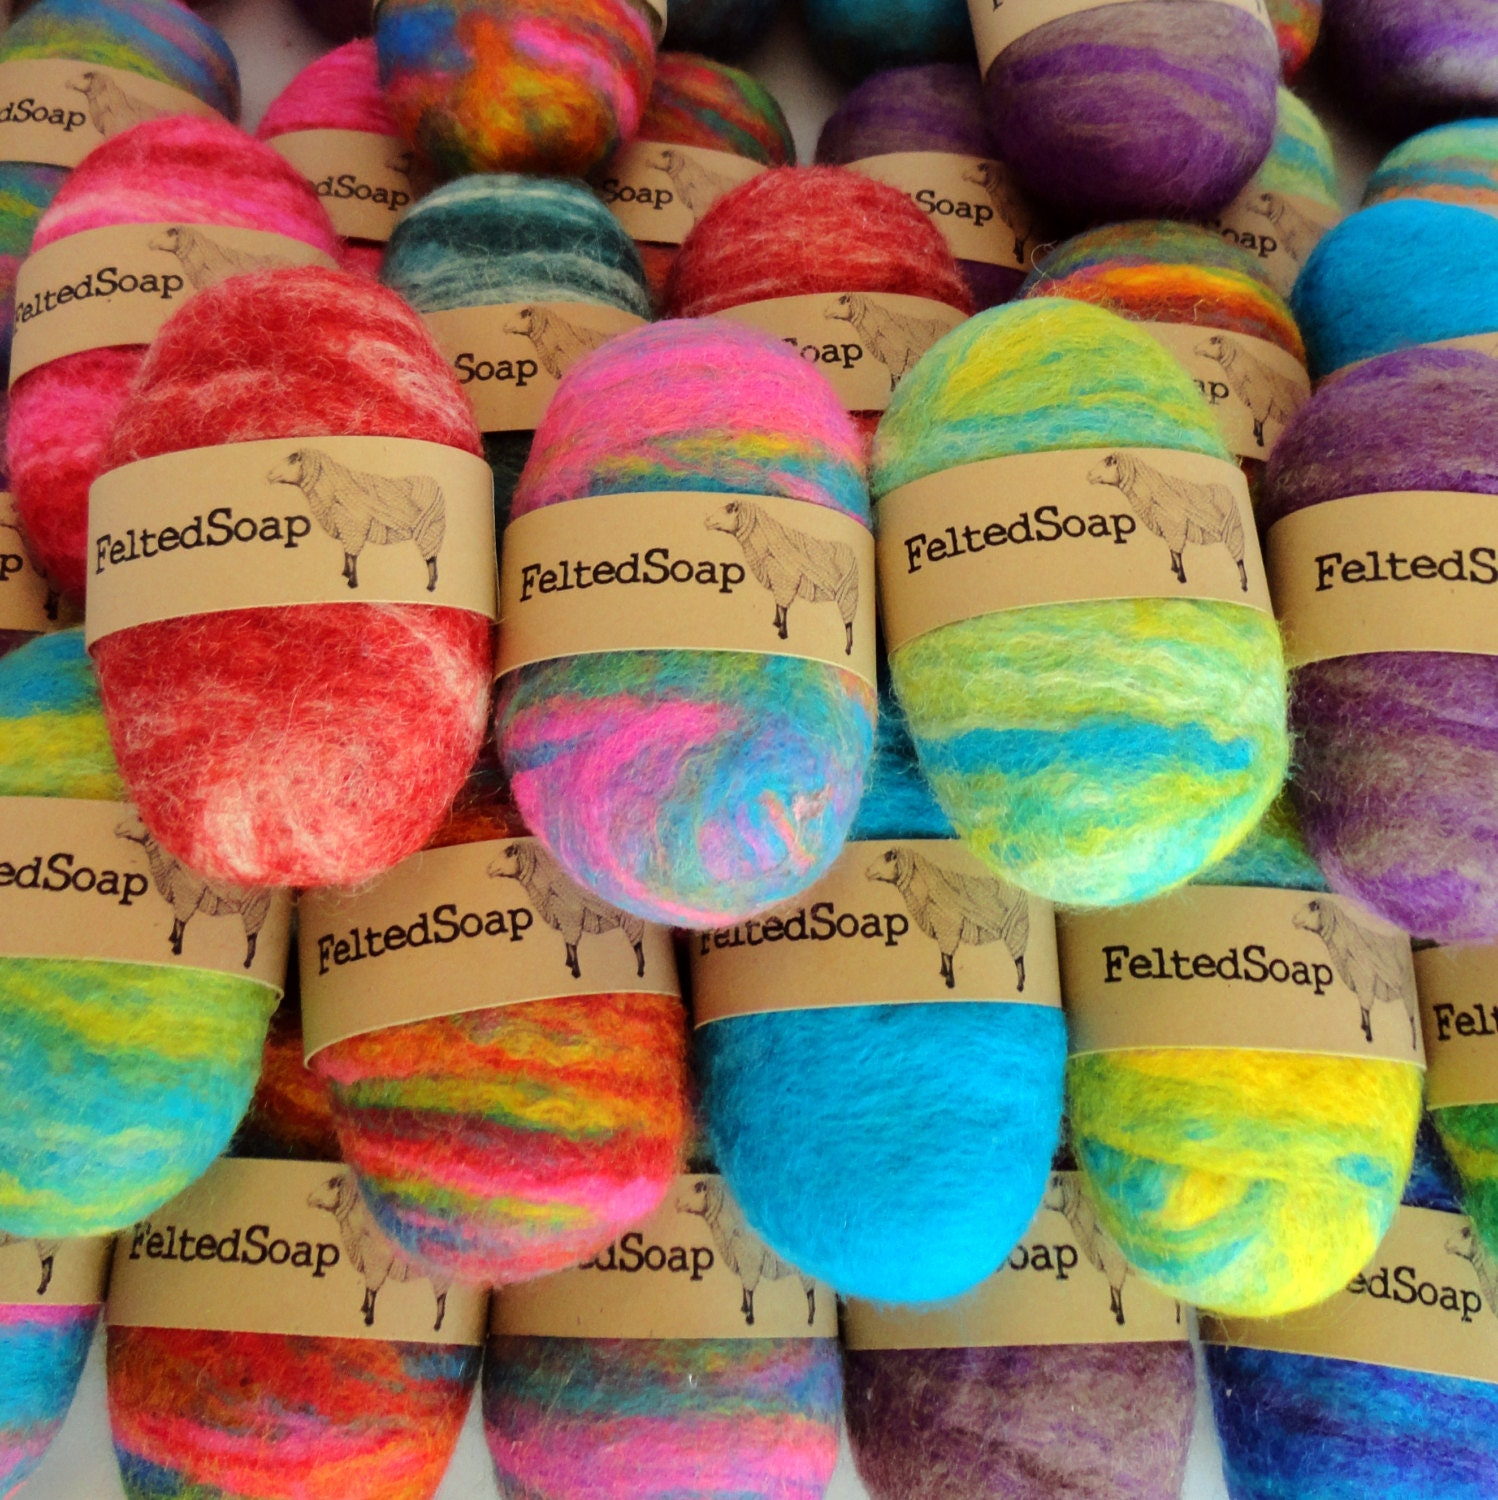 50 Felted Soap Bars Unique Gift In Bulk Wholesale Resell